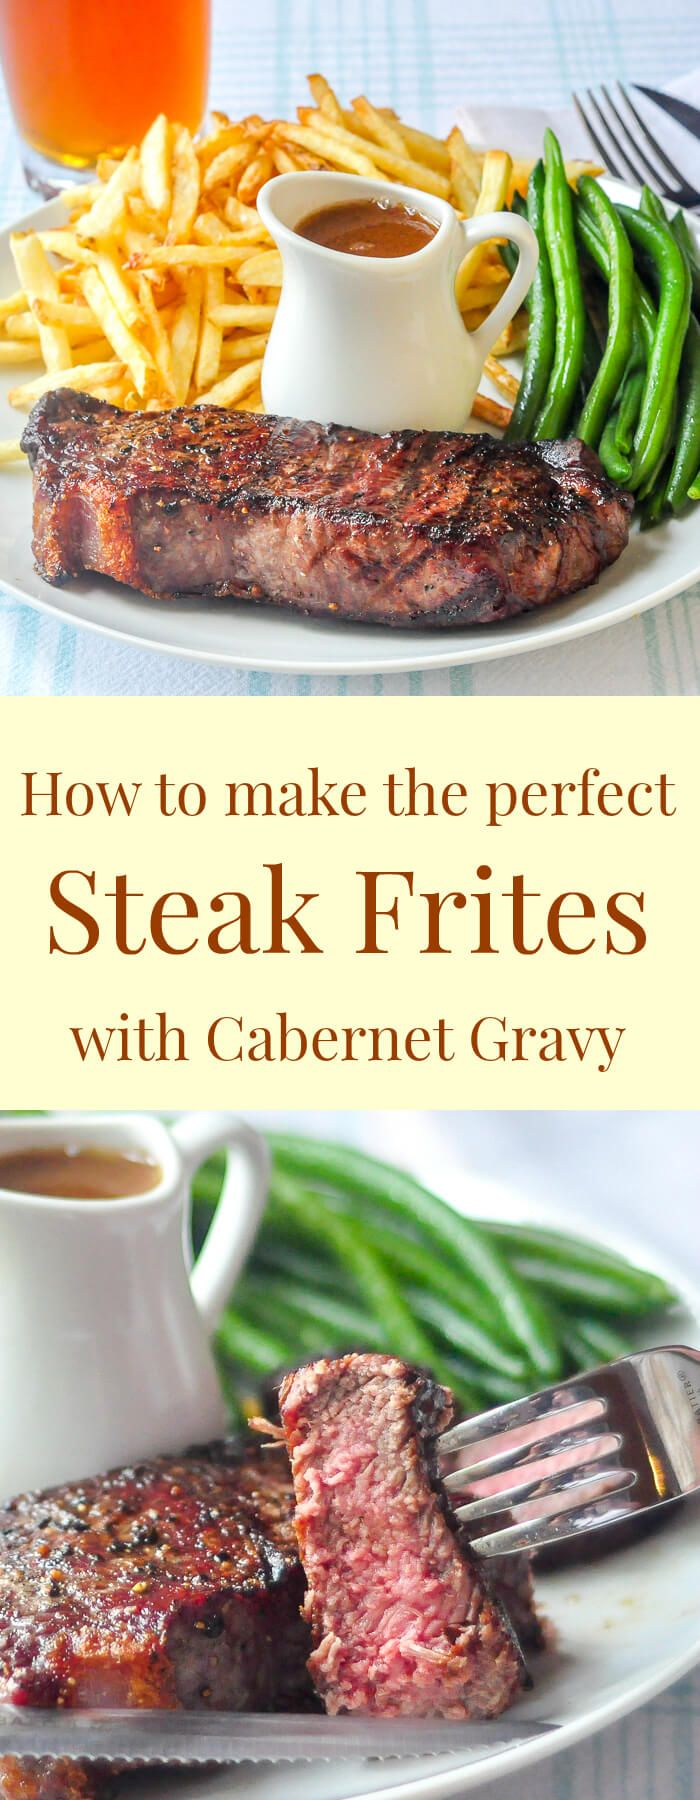 Steak Frites with Cabernet Thyme Gravy - a French bistro comfort food classic , elevated by an incredibly flavourful gravy. Tips for perfect frites, too. It's the main course in our new Valentine's Day Dinner Menu.